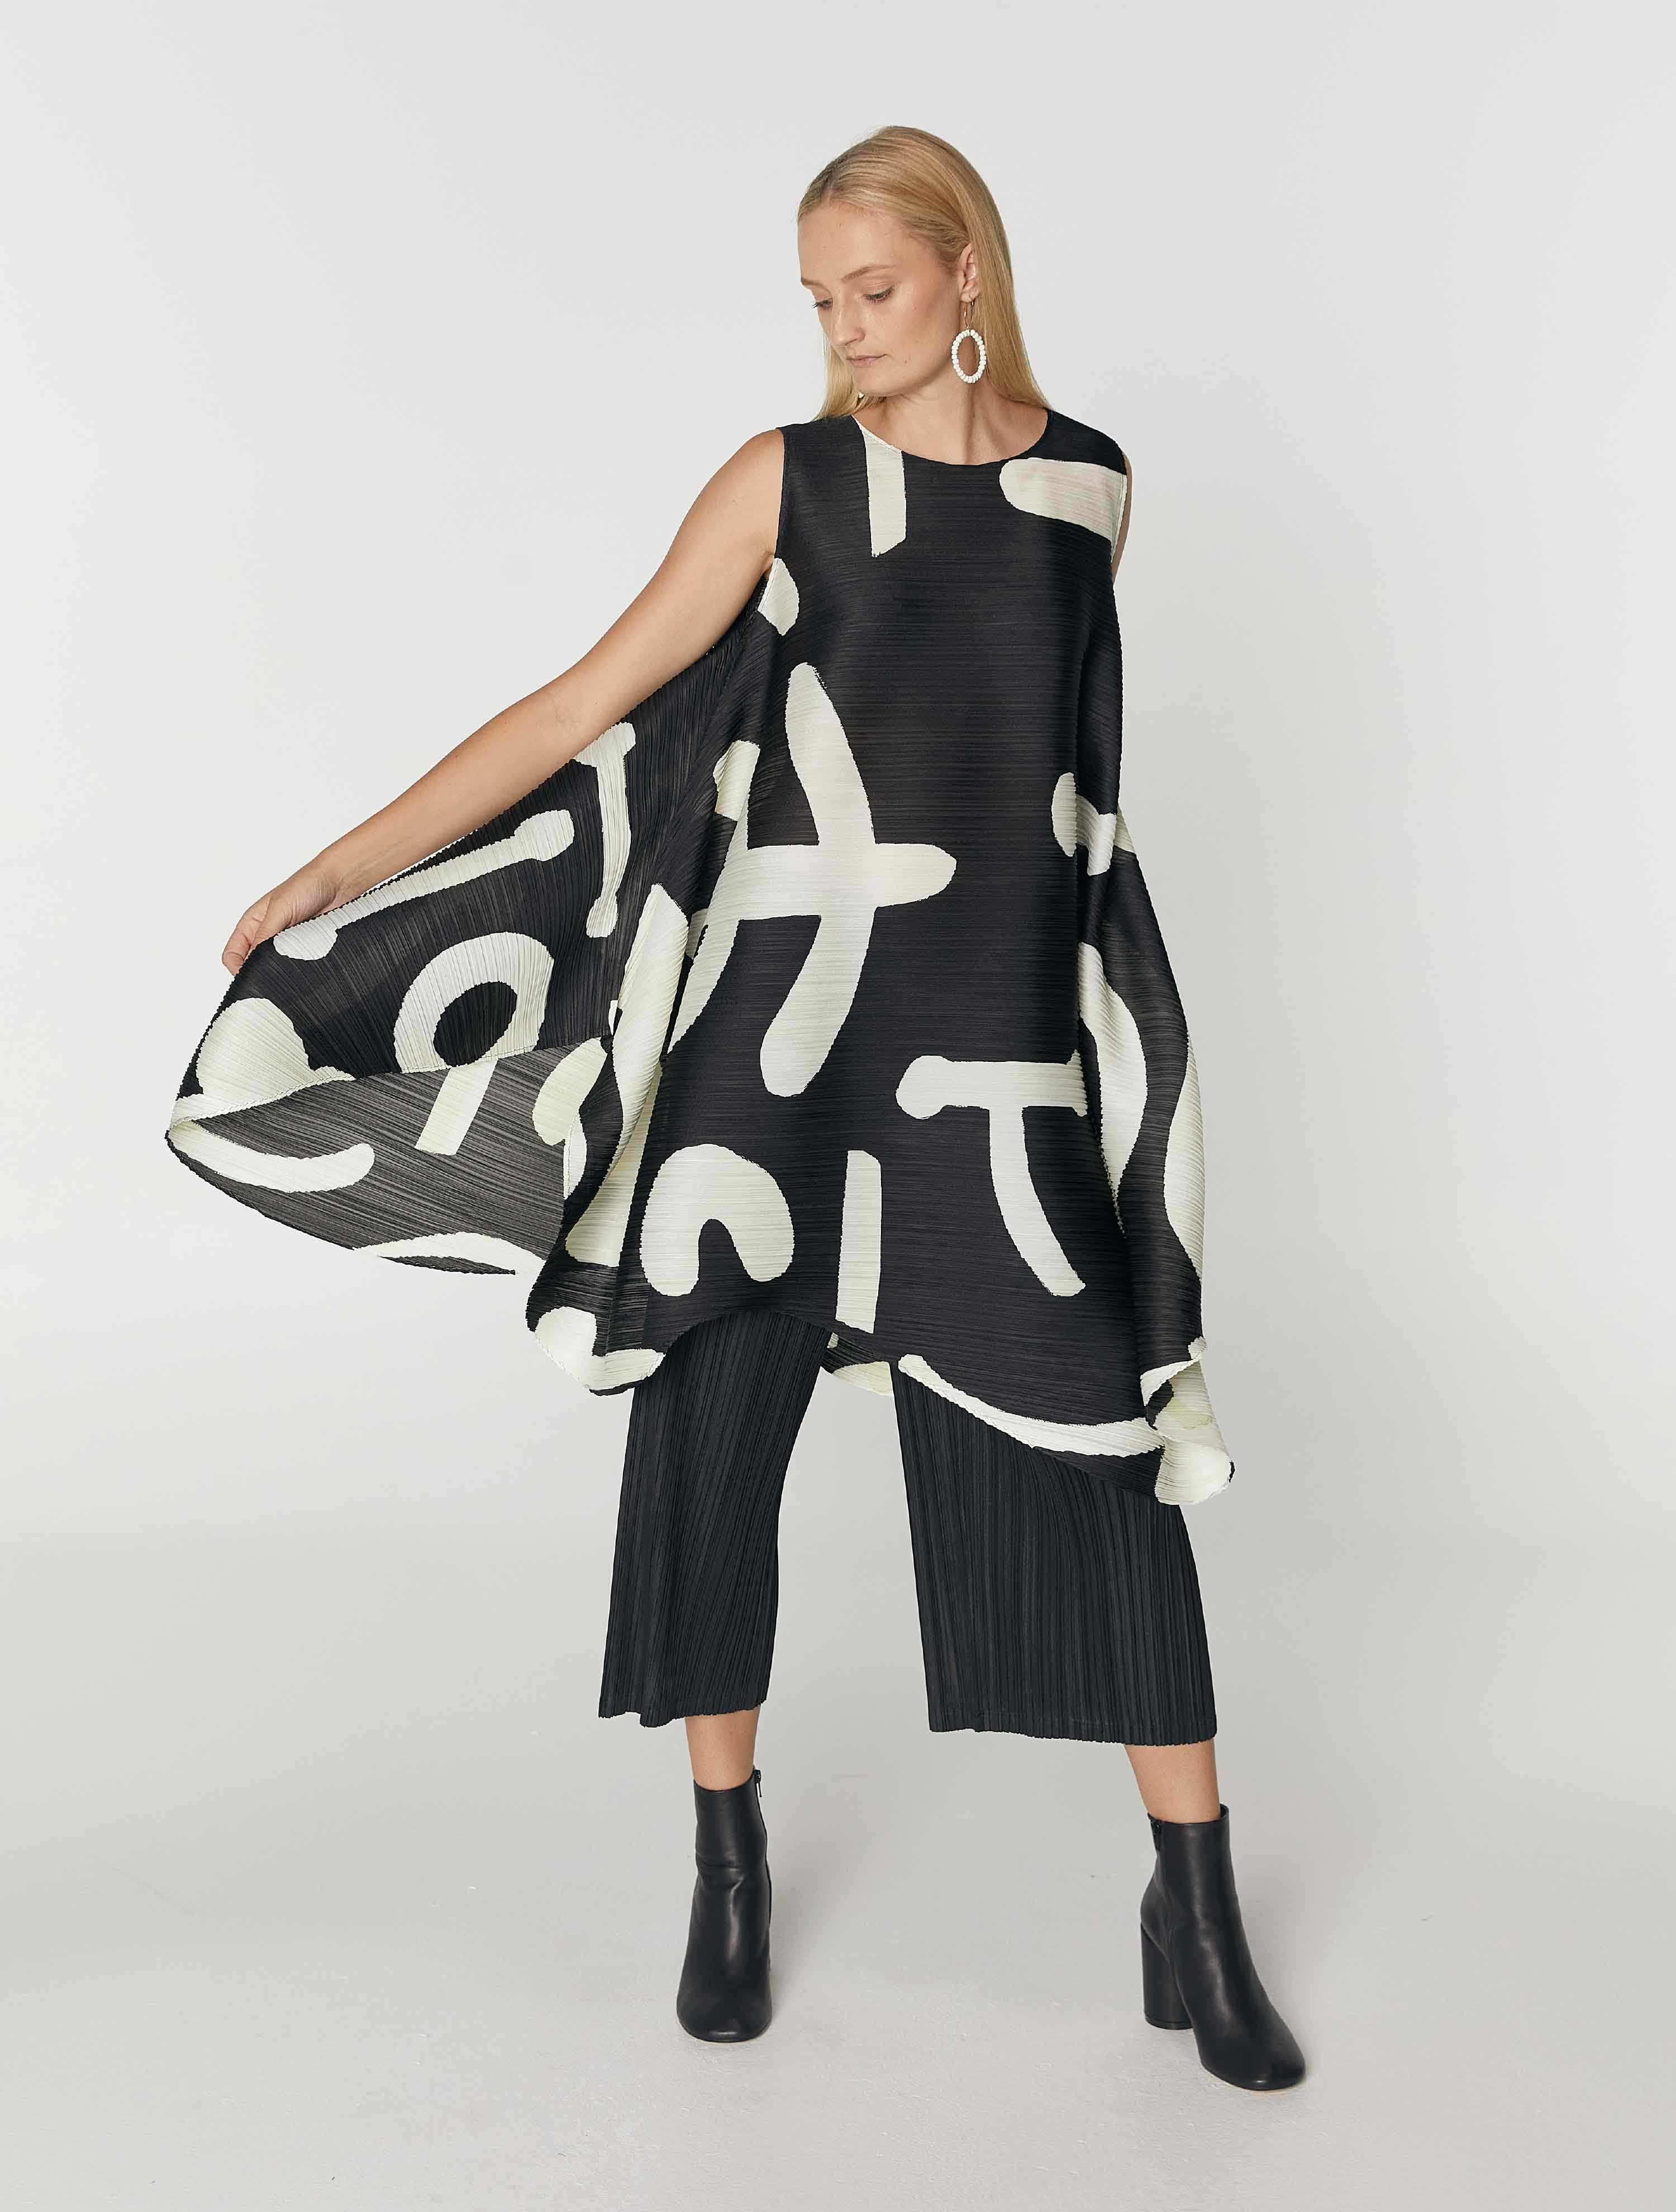 New season Pleats Please by Issey Miyake